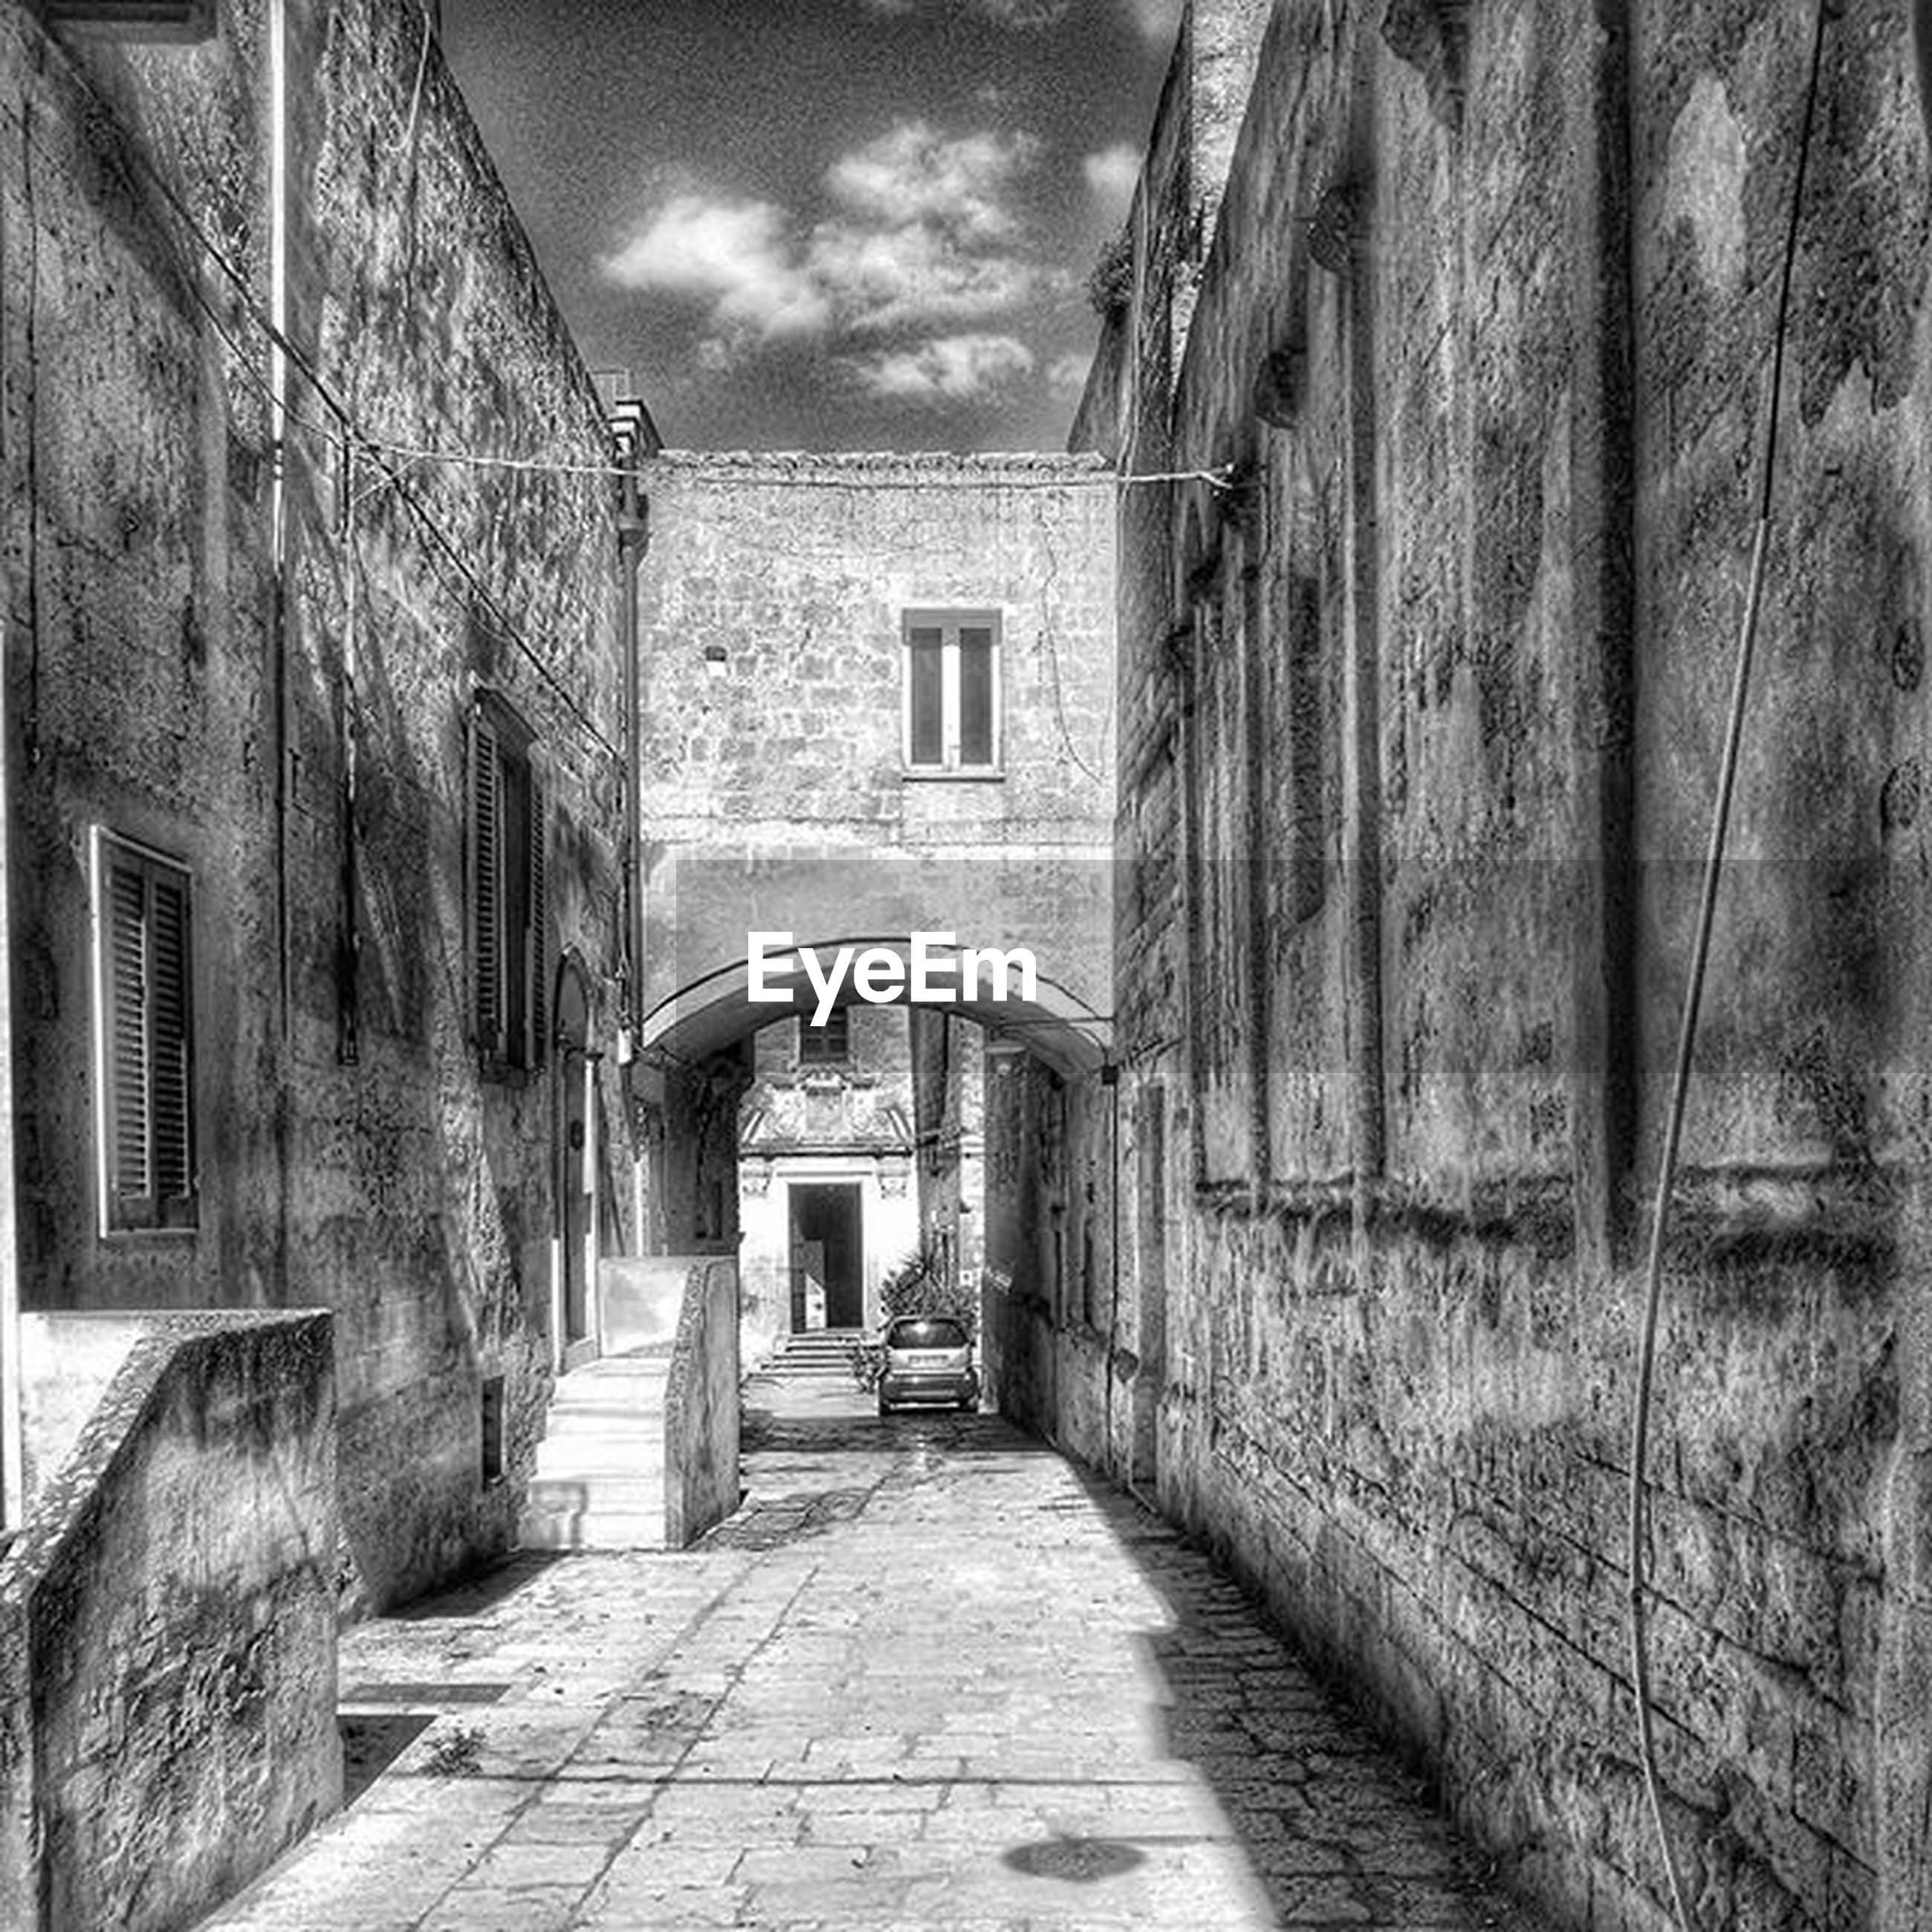 architecture, built structure, building exterior, the way forward, sky, narrow, house, walkway, diminishing perspective, door, building, pathway, arch, empty, residential structure, leading, cobblestone, day, cloud - sky, entrance